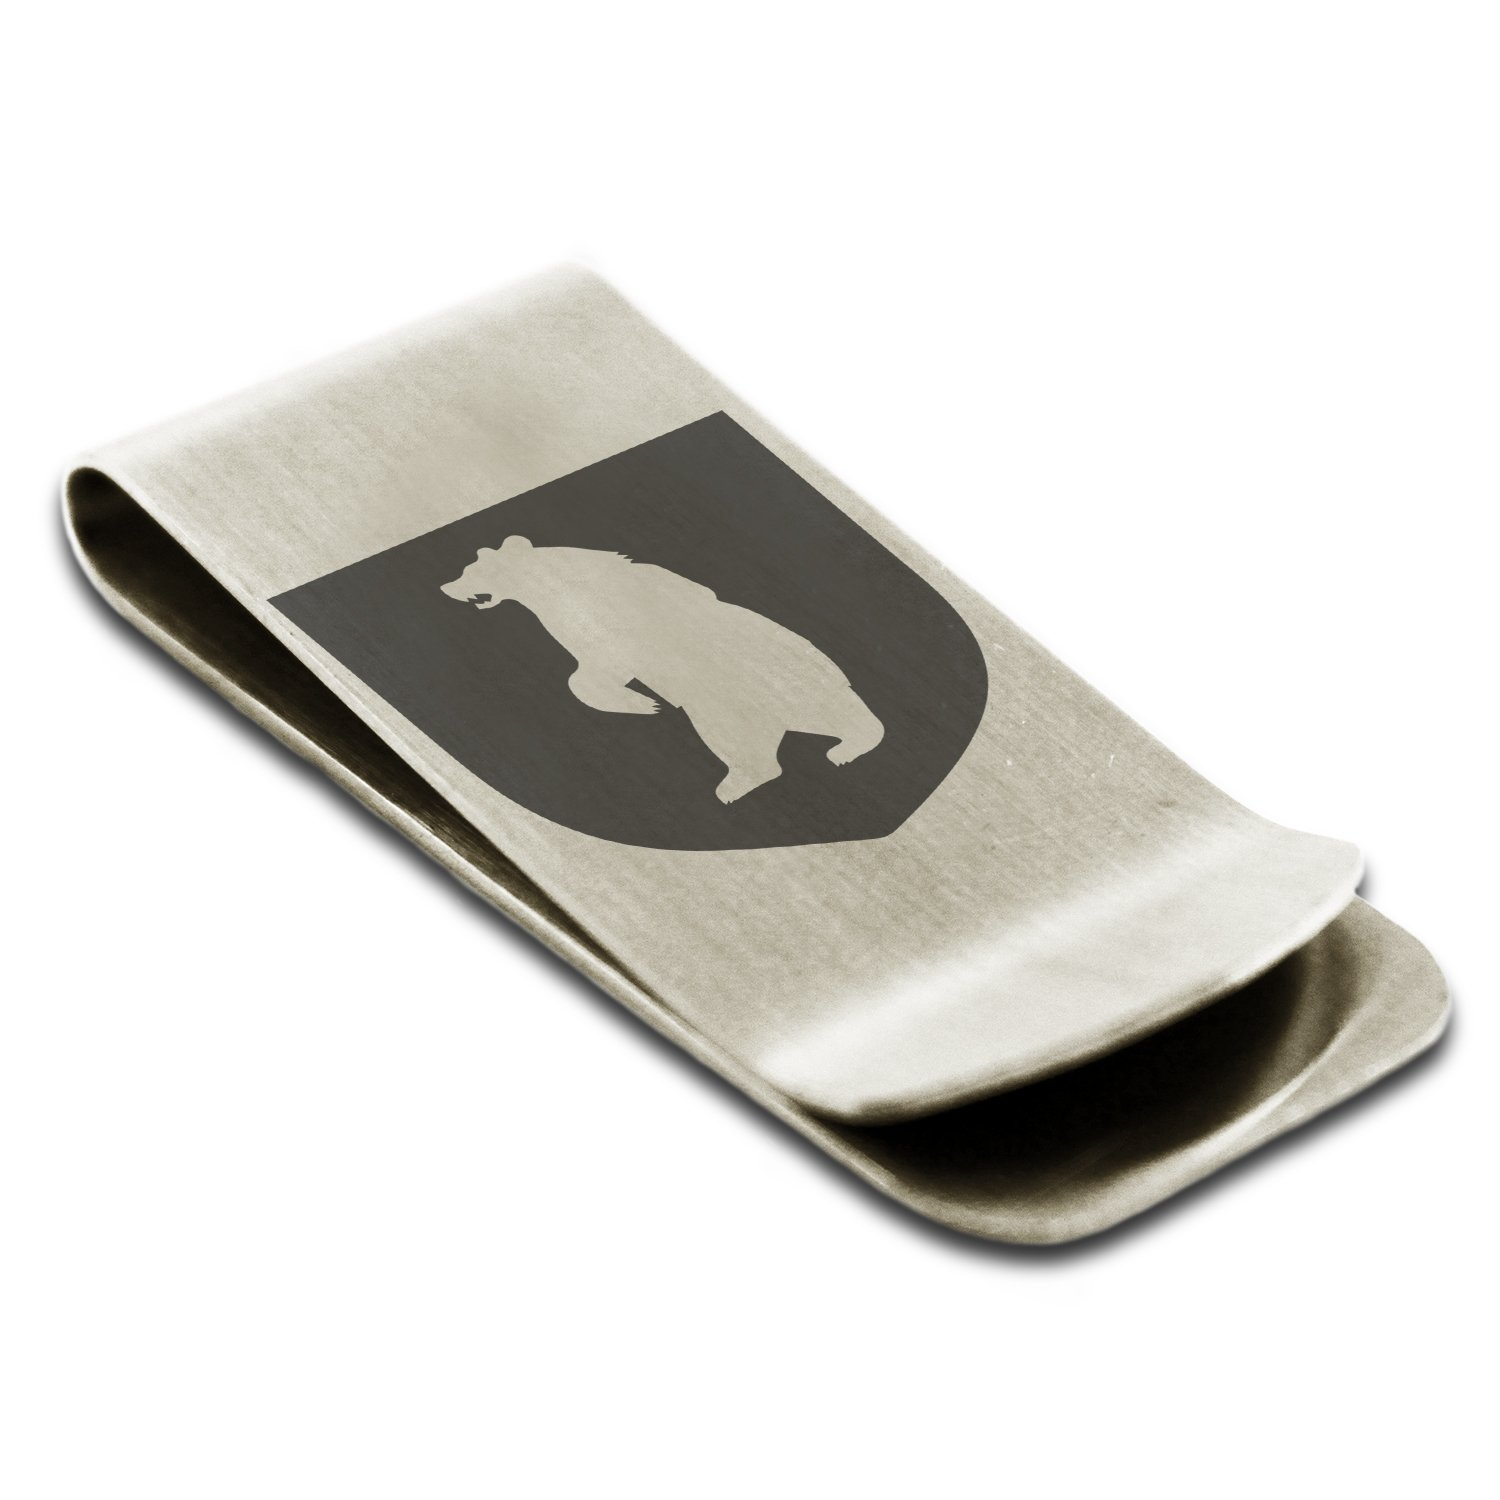 Stainless Steel Bear Ferocity Coat of Arms Shield Symbol Engraved Money Clip Credit Card Holder